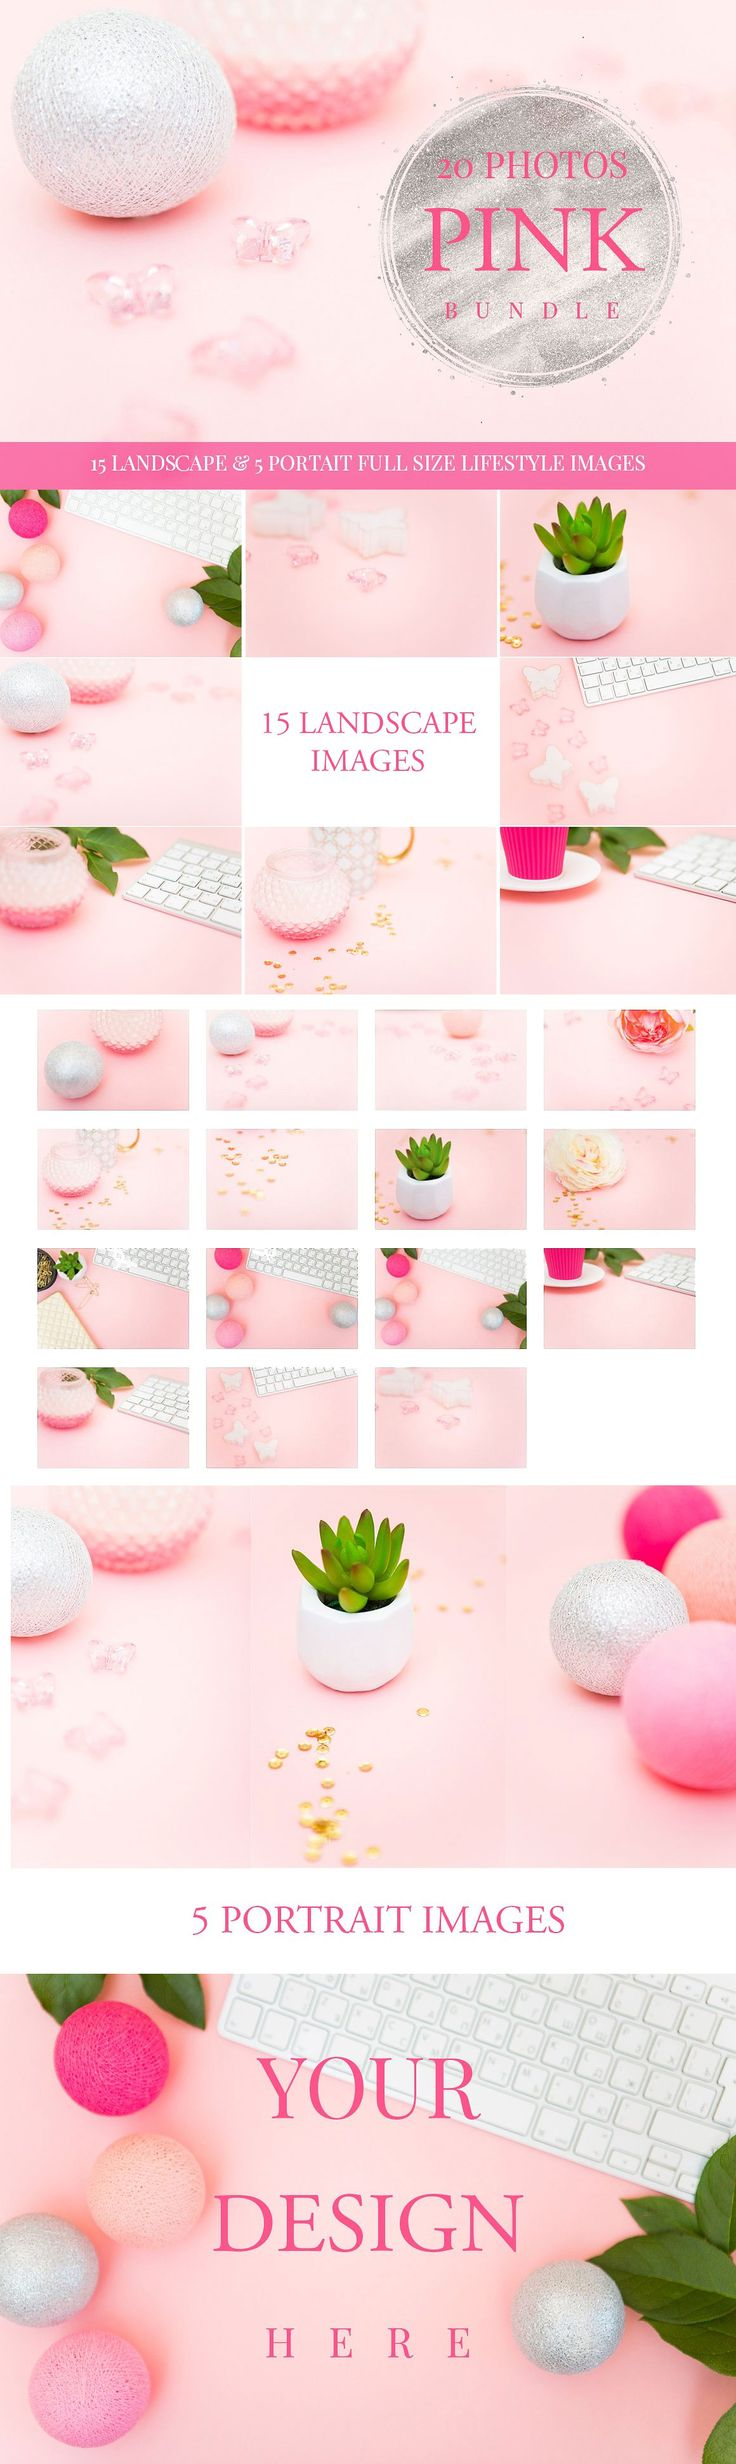 #Freebies : This hand styled #stockphotos is ready to download and perfect to use with your #WEBSITE, SOCIAL MEDIA & DIGITAL #MARKETING. Designed to make YOUR #brand AWESOME. #feminine #photographer #GEOMETRIC #spring